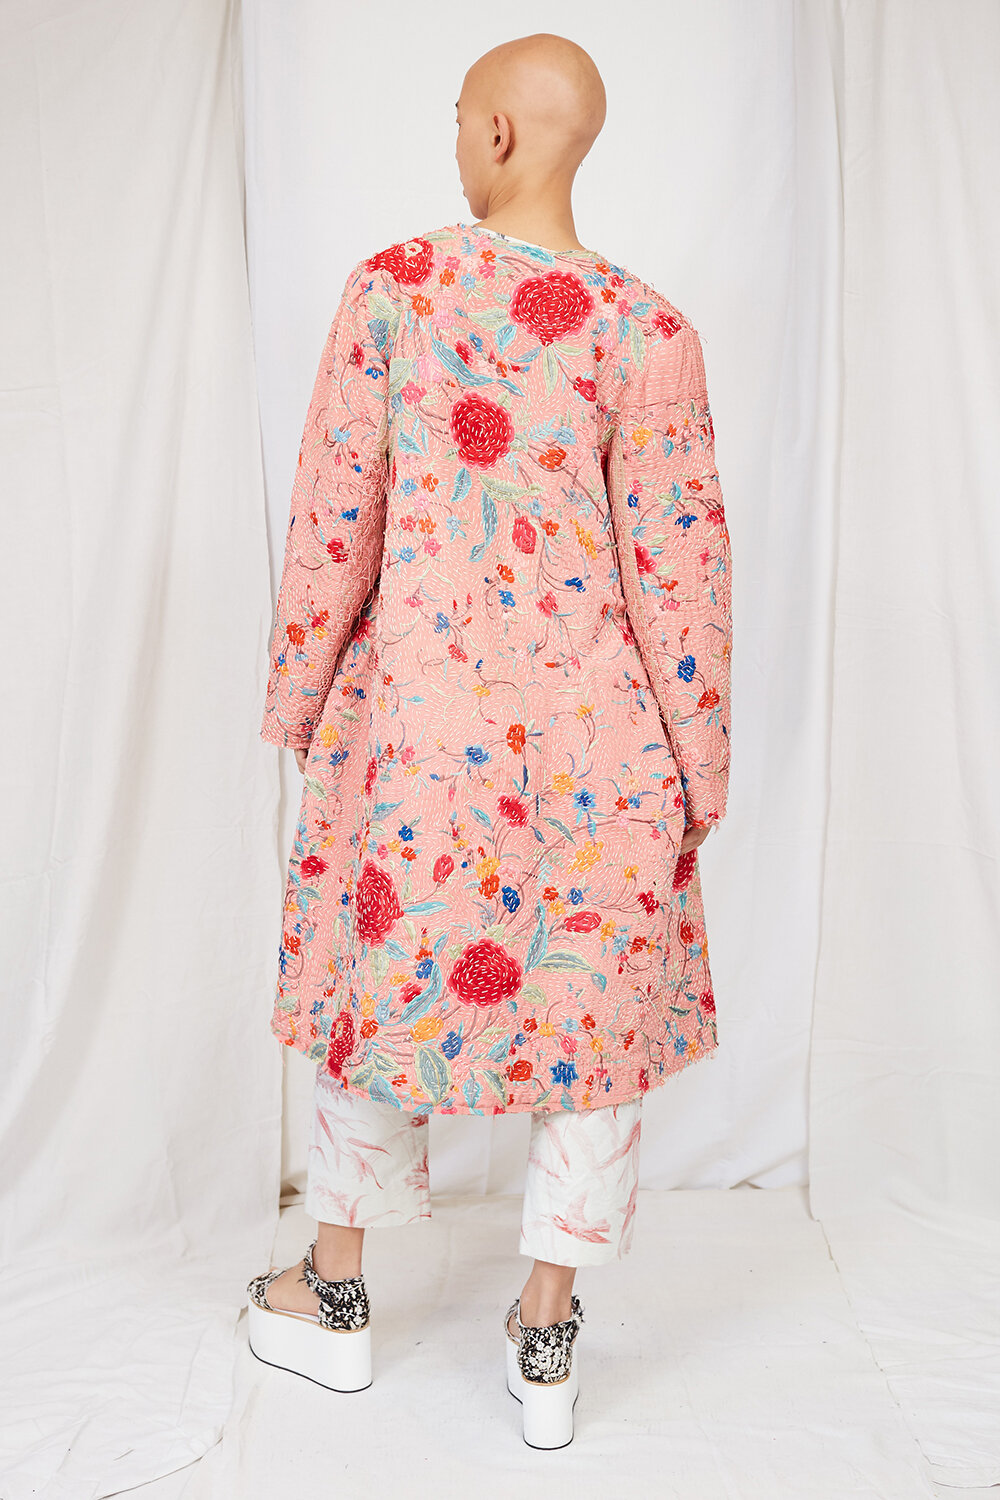 By Walid Womenswear Tanita Piano Shawl Floral Embroidered Silk Coat Back SS20